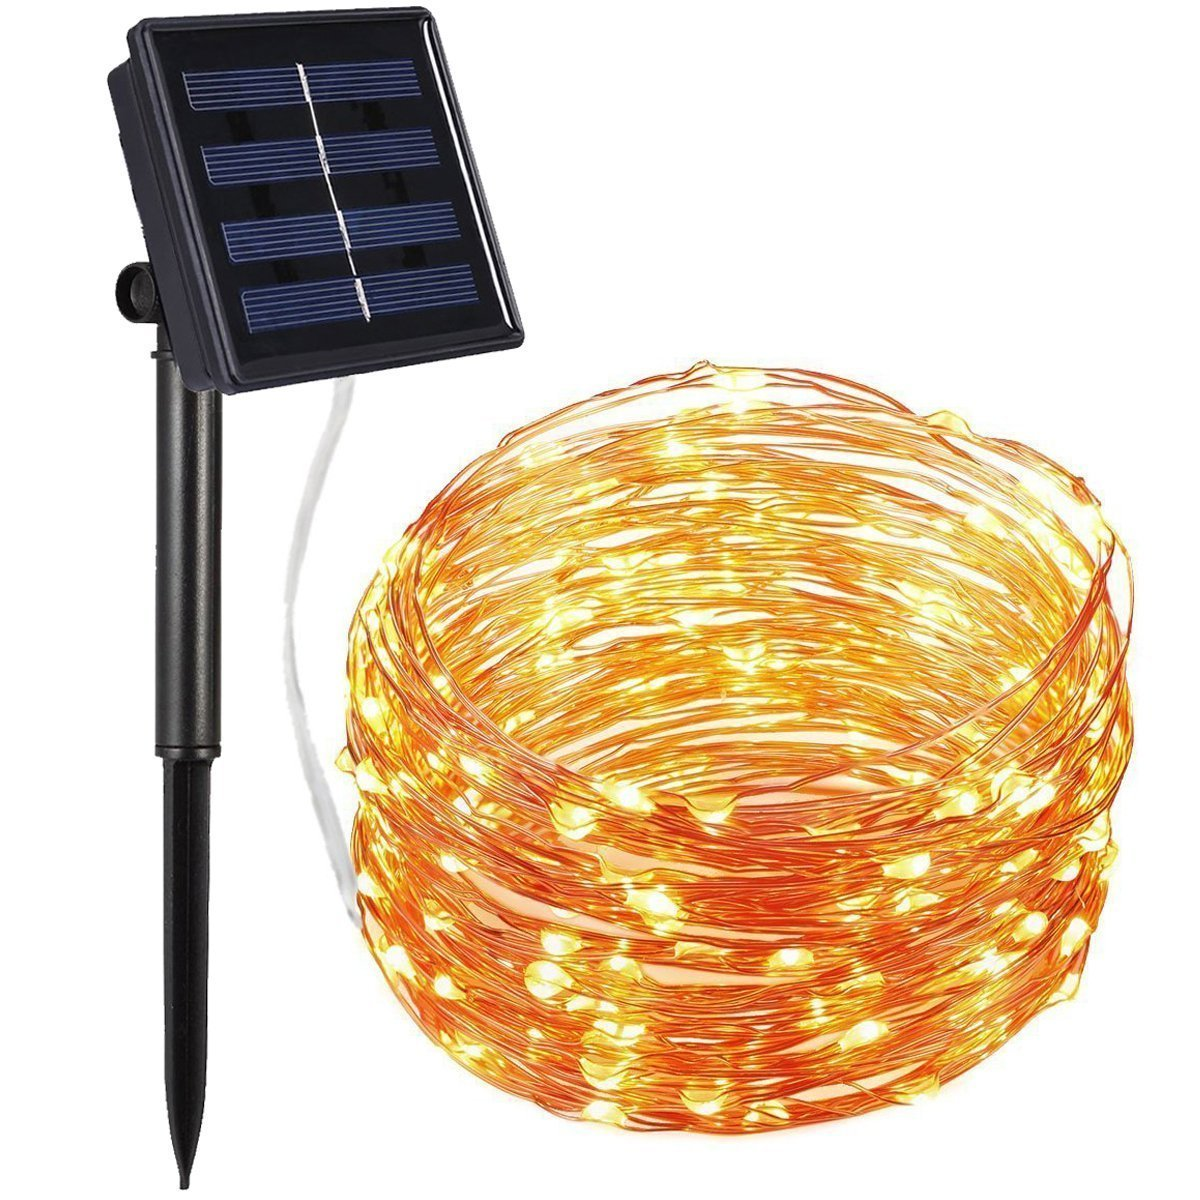 Best String Christmas Lights : Best solar powered string Christmas lights LEDwatcher